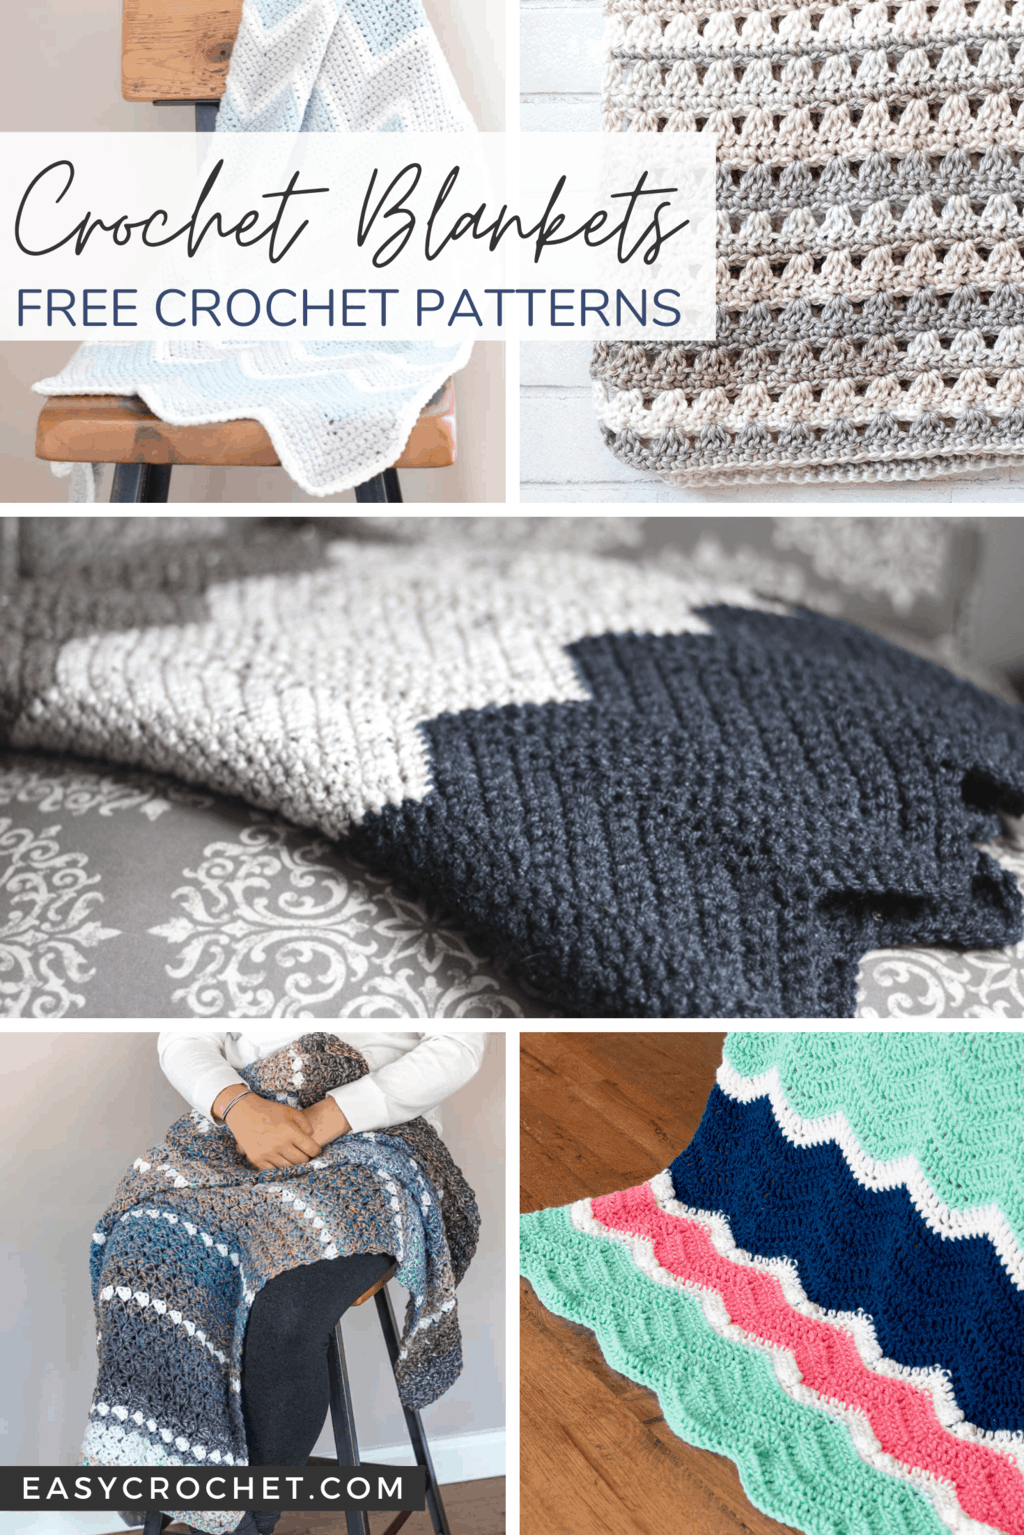 10 free crochet blanket patterns that are perfect for all skill levels of crocheters. Find all ten free patterns at easycrochet.com via @easycrochetcom